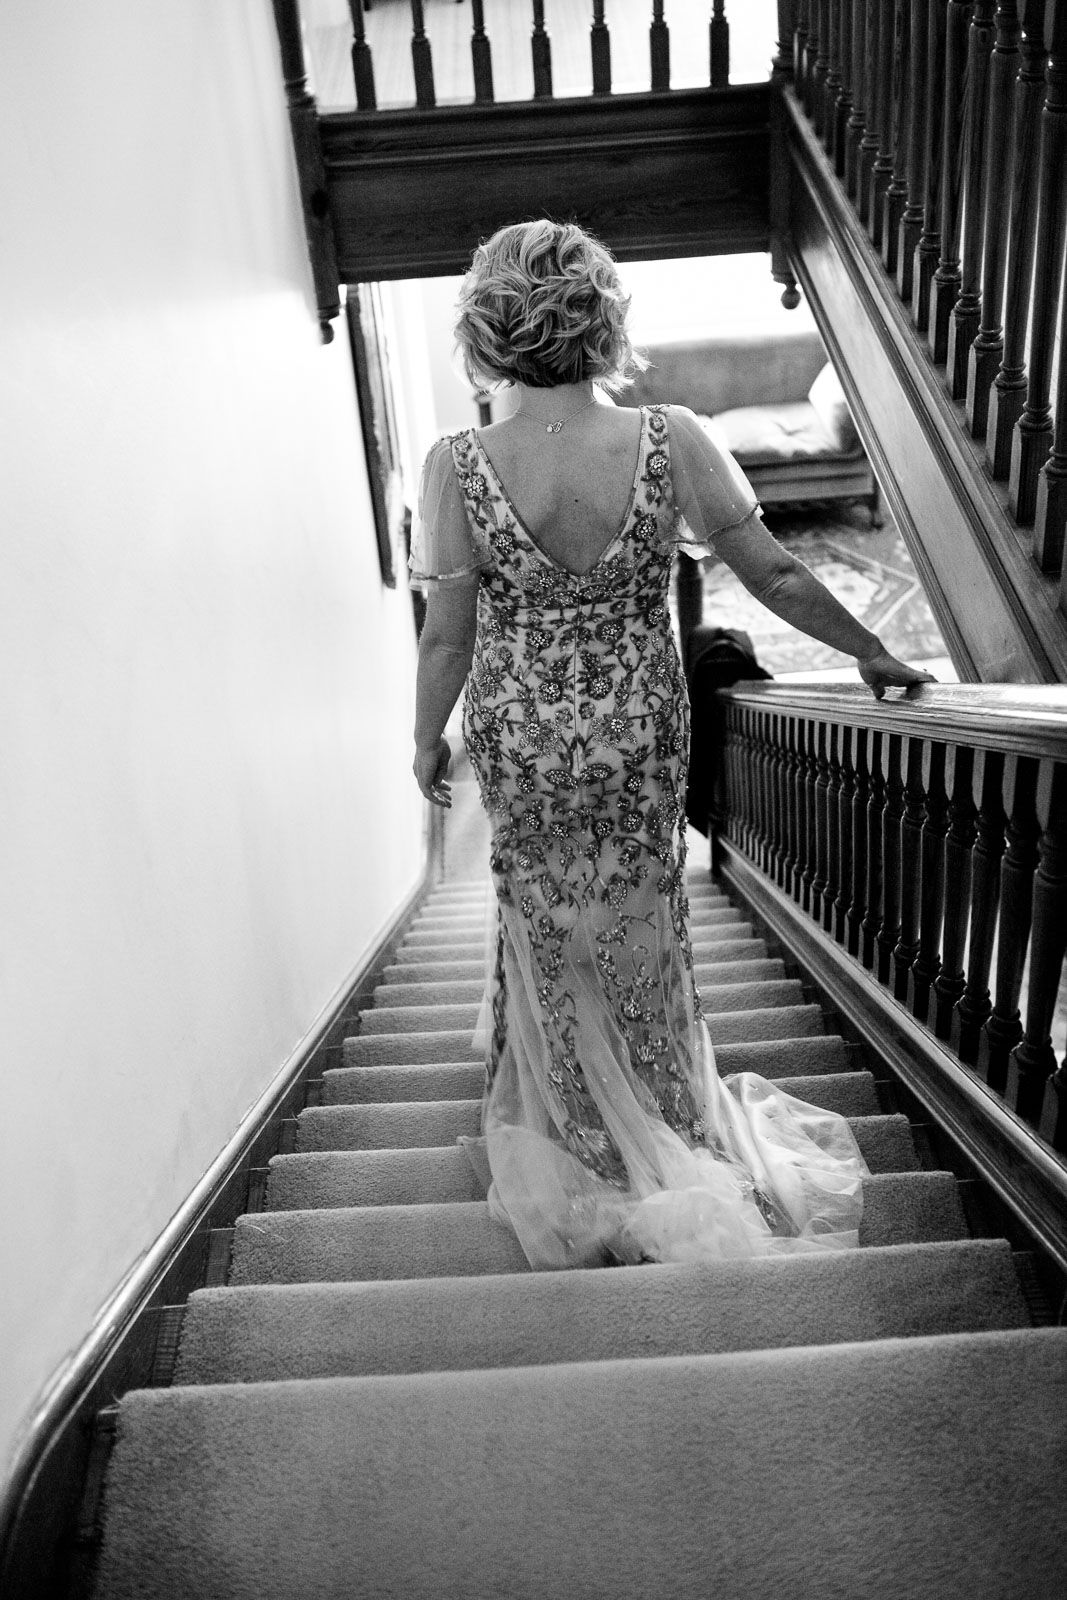 bride in embroidered dress walking down stairs